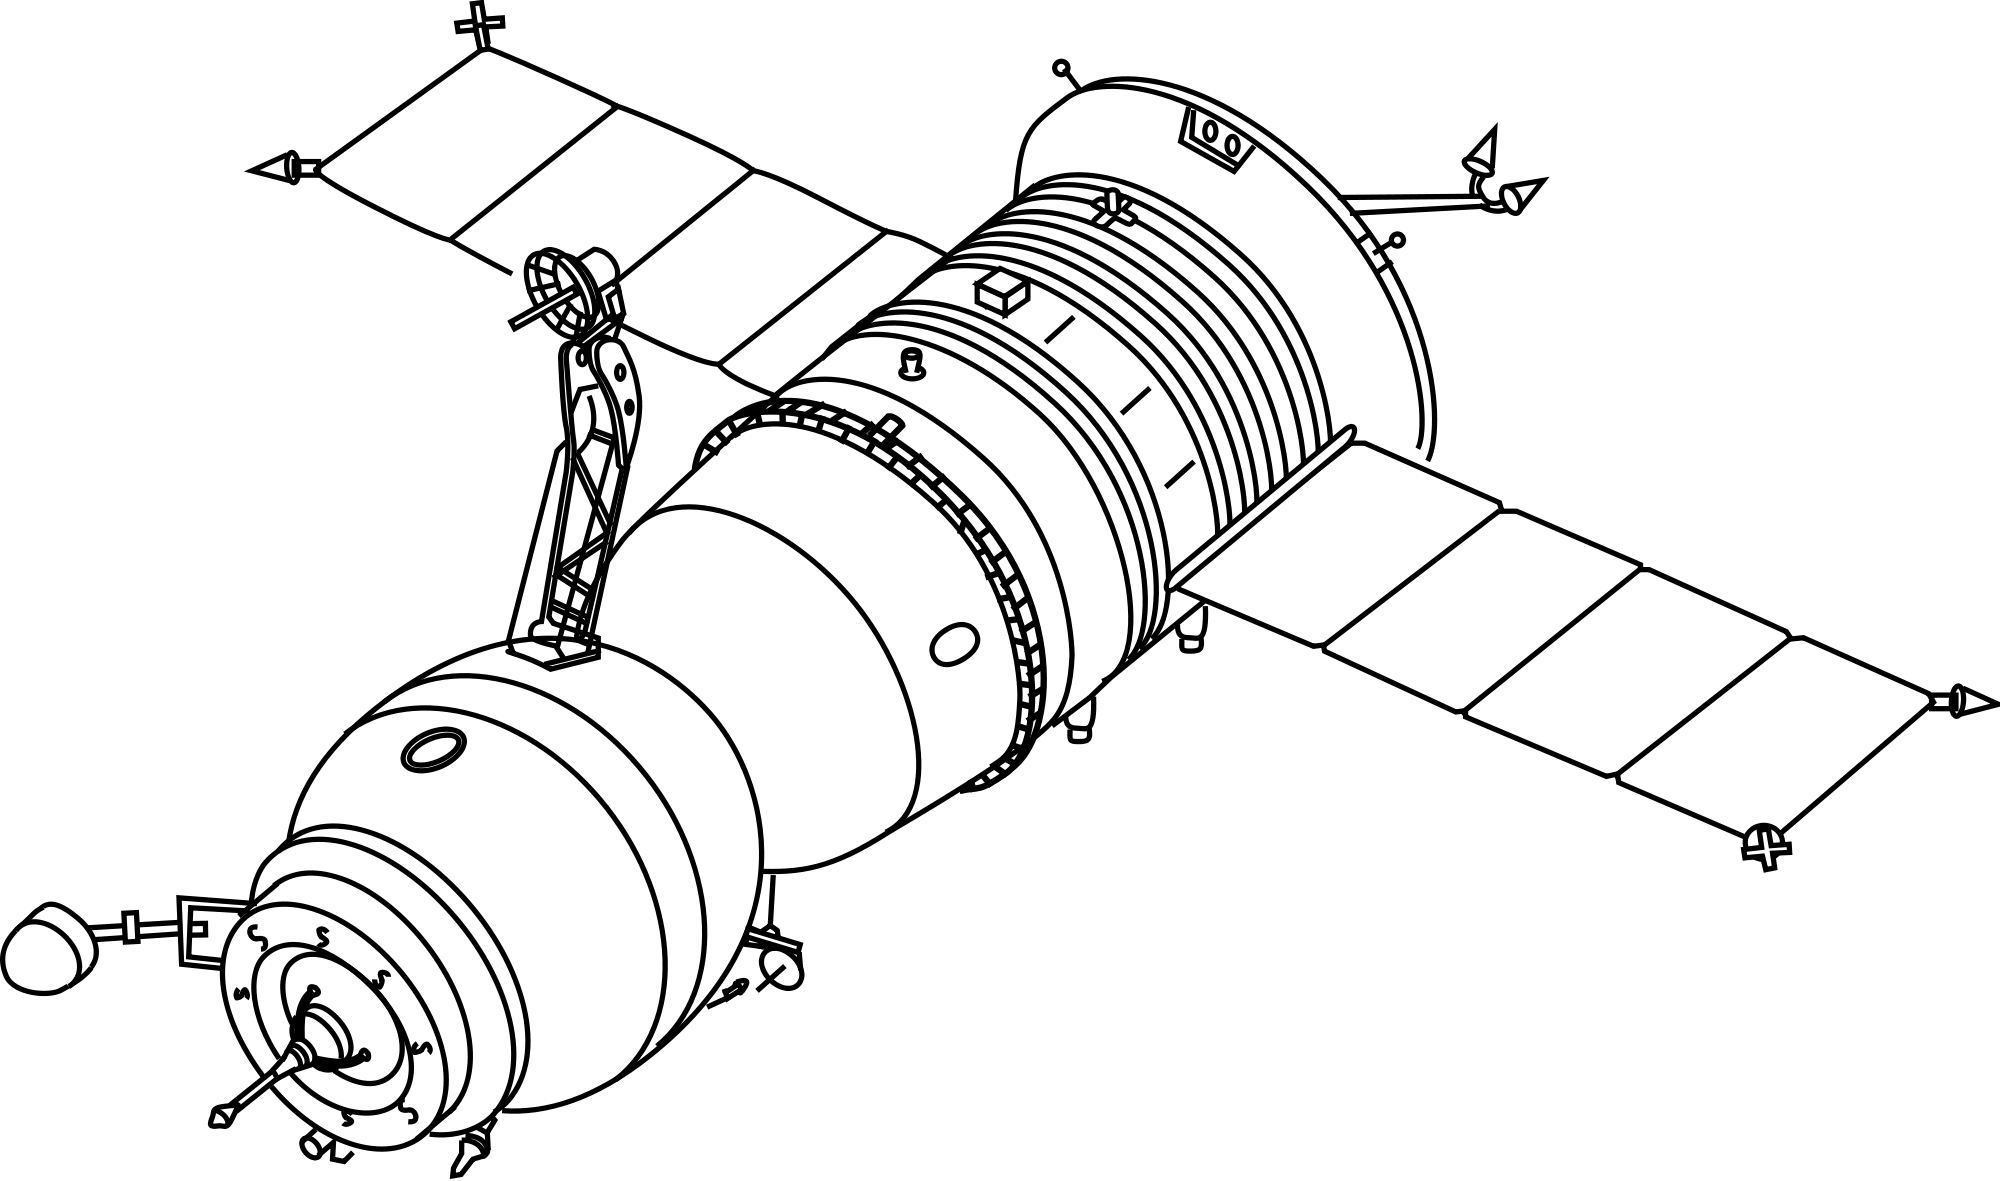 Spacecraft drawing technical. Soyuz transparent png stickpng